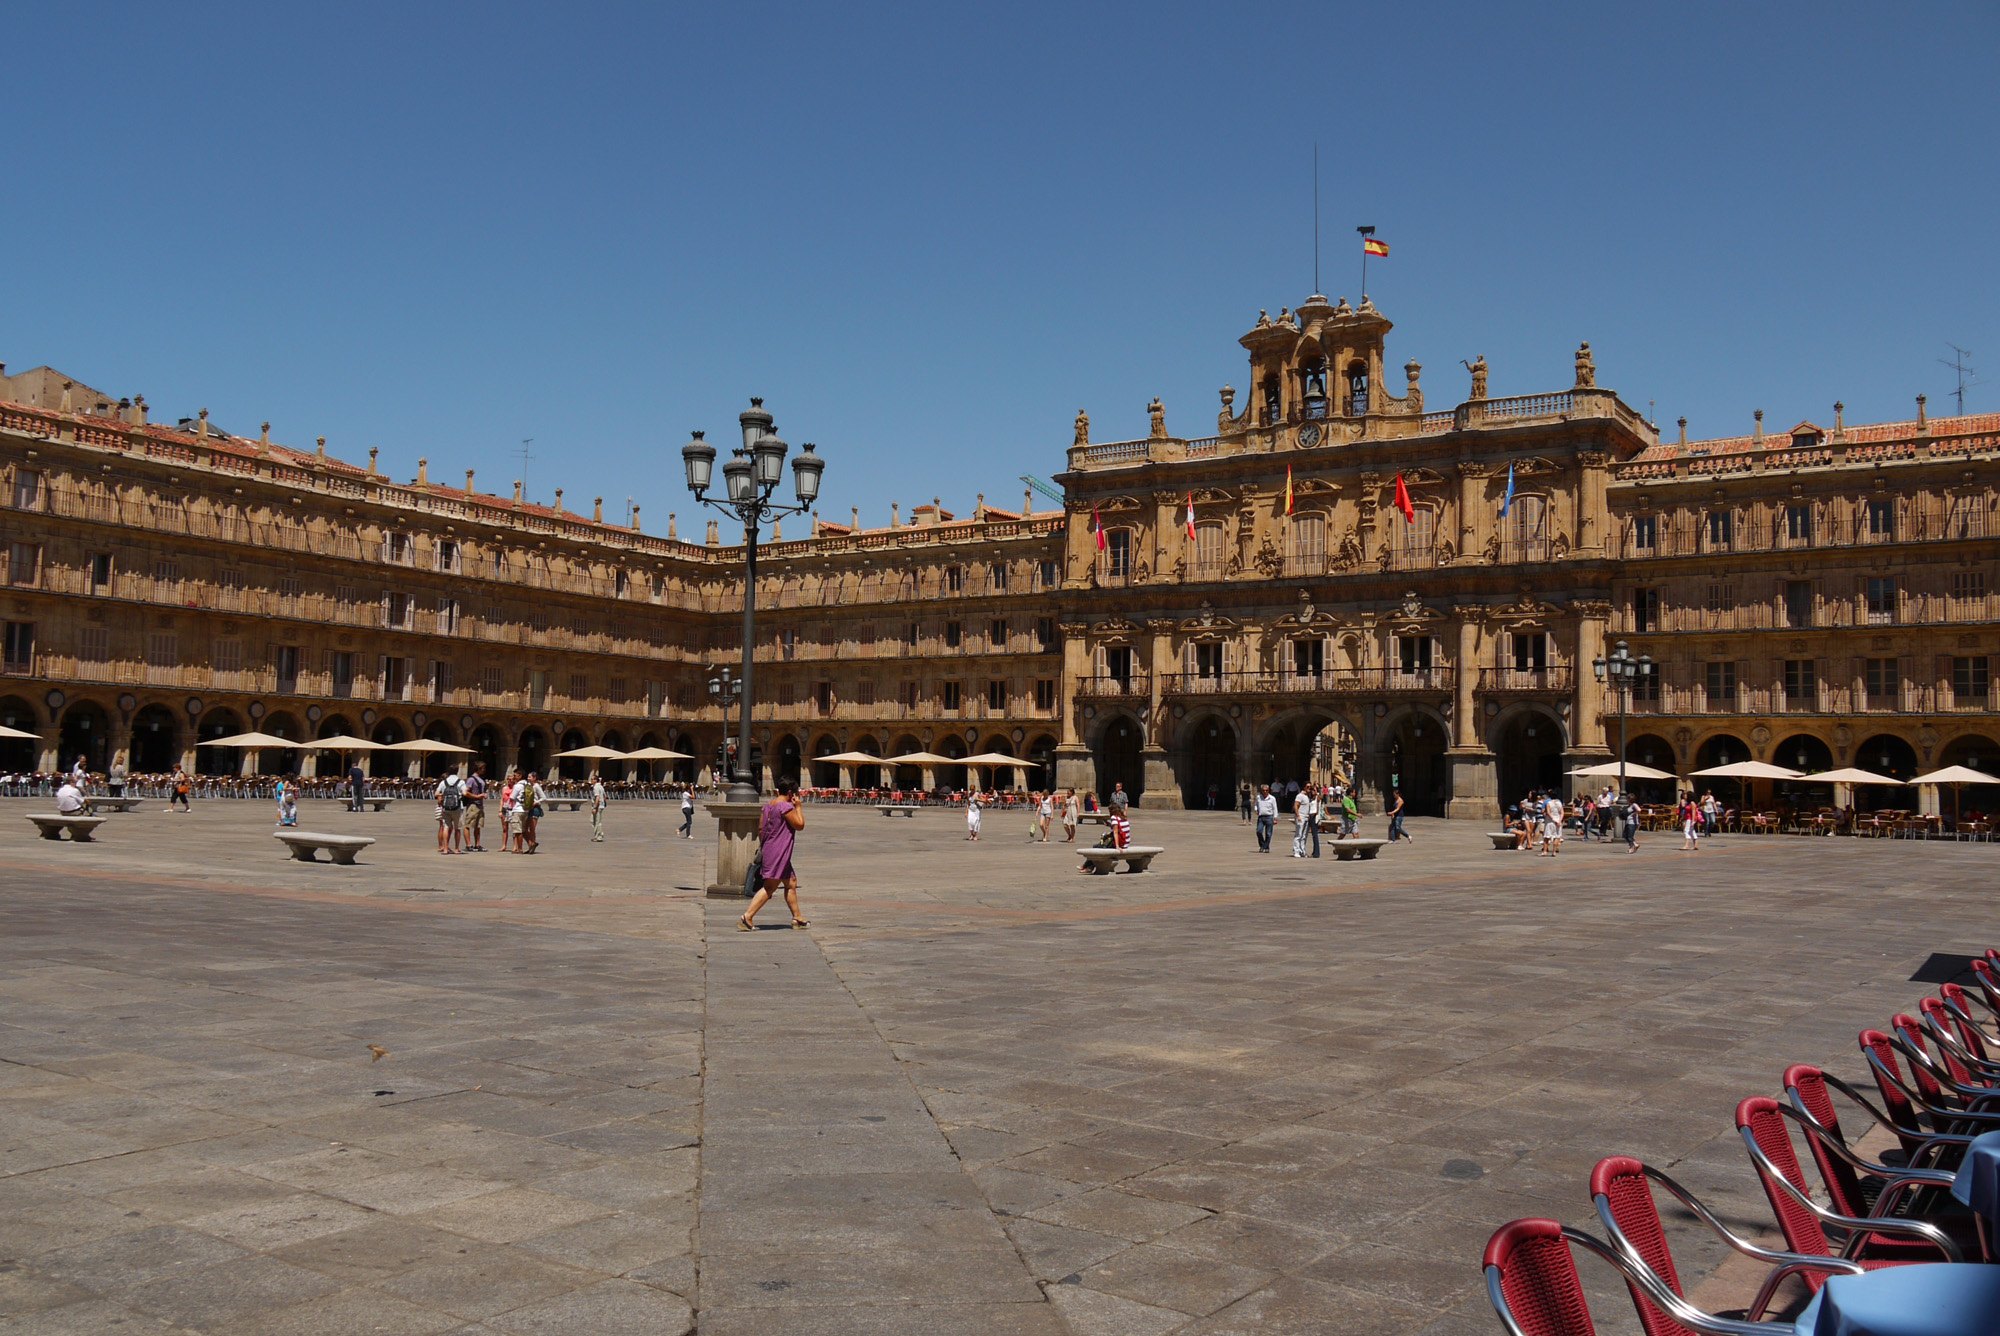 Salamanca Spain  City pictures : Salamanca, Spain 24 Ayuntamiento de Salamanca in glorious sunshine ...